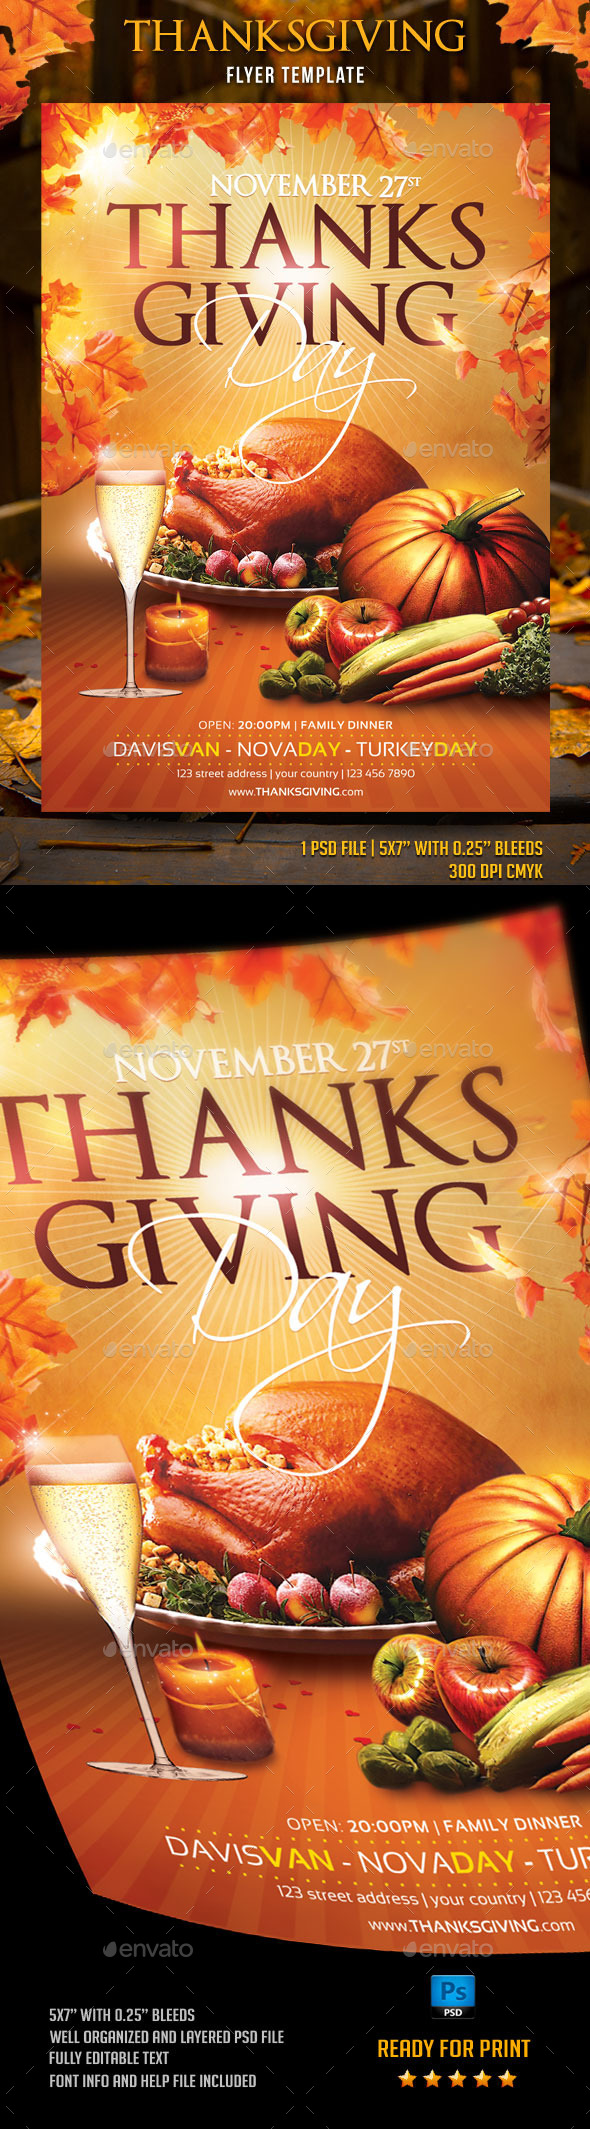 Thanksgiving Day Flyer Template - Flyers Print Templates